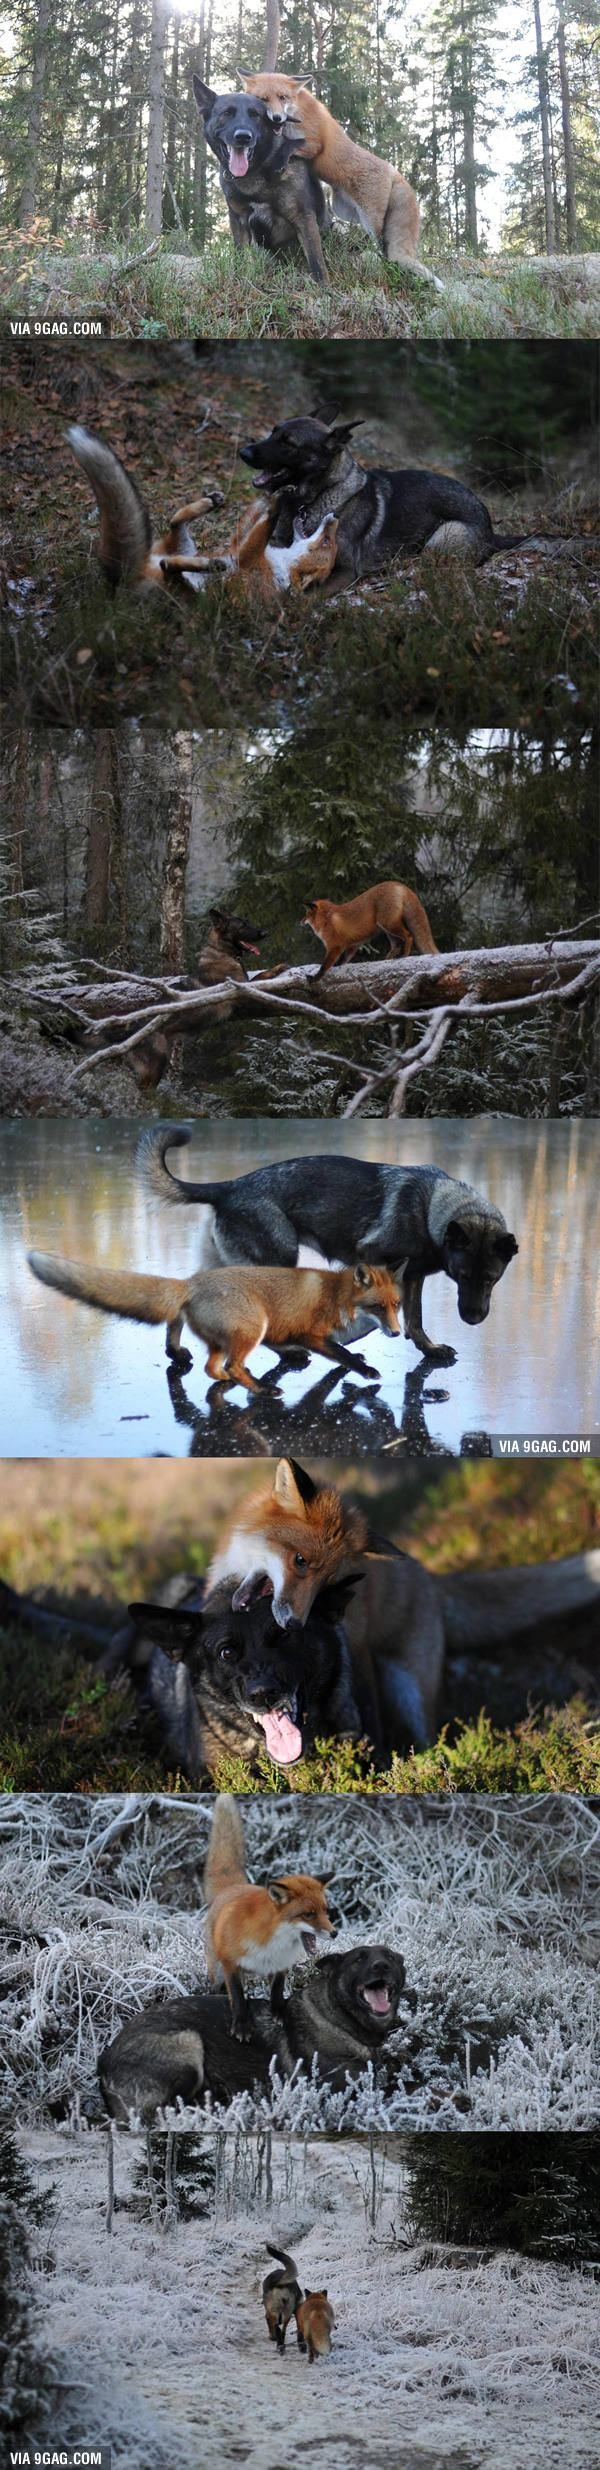 464 best foxes images on pinterest red fox foxes and spirit animal